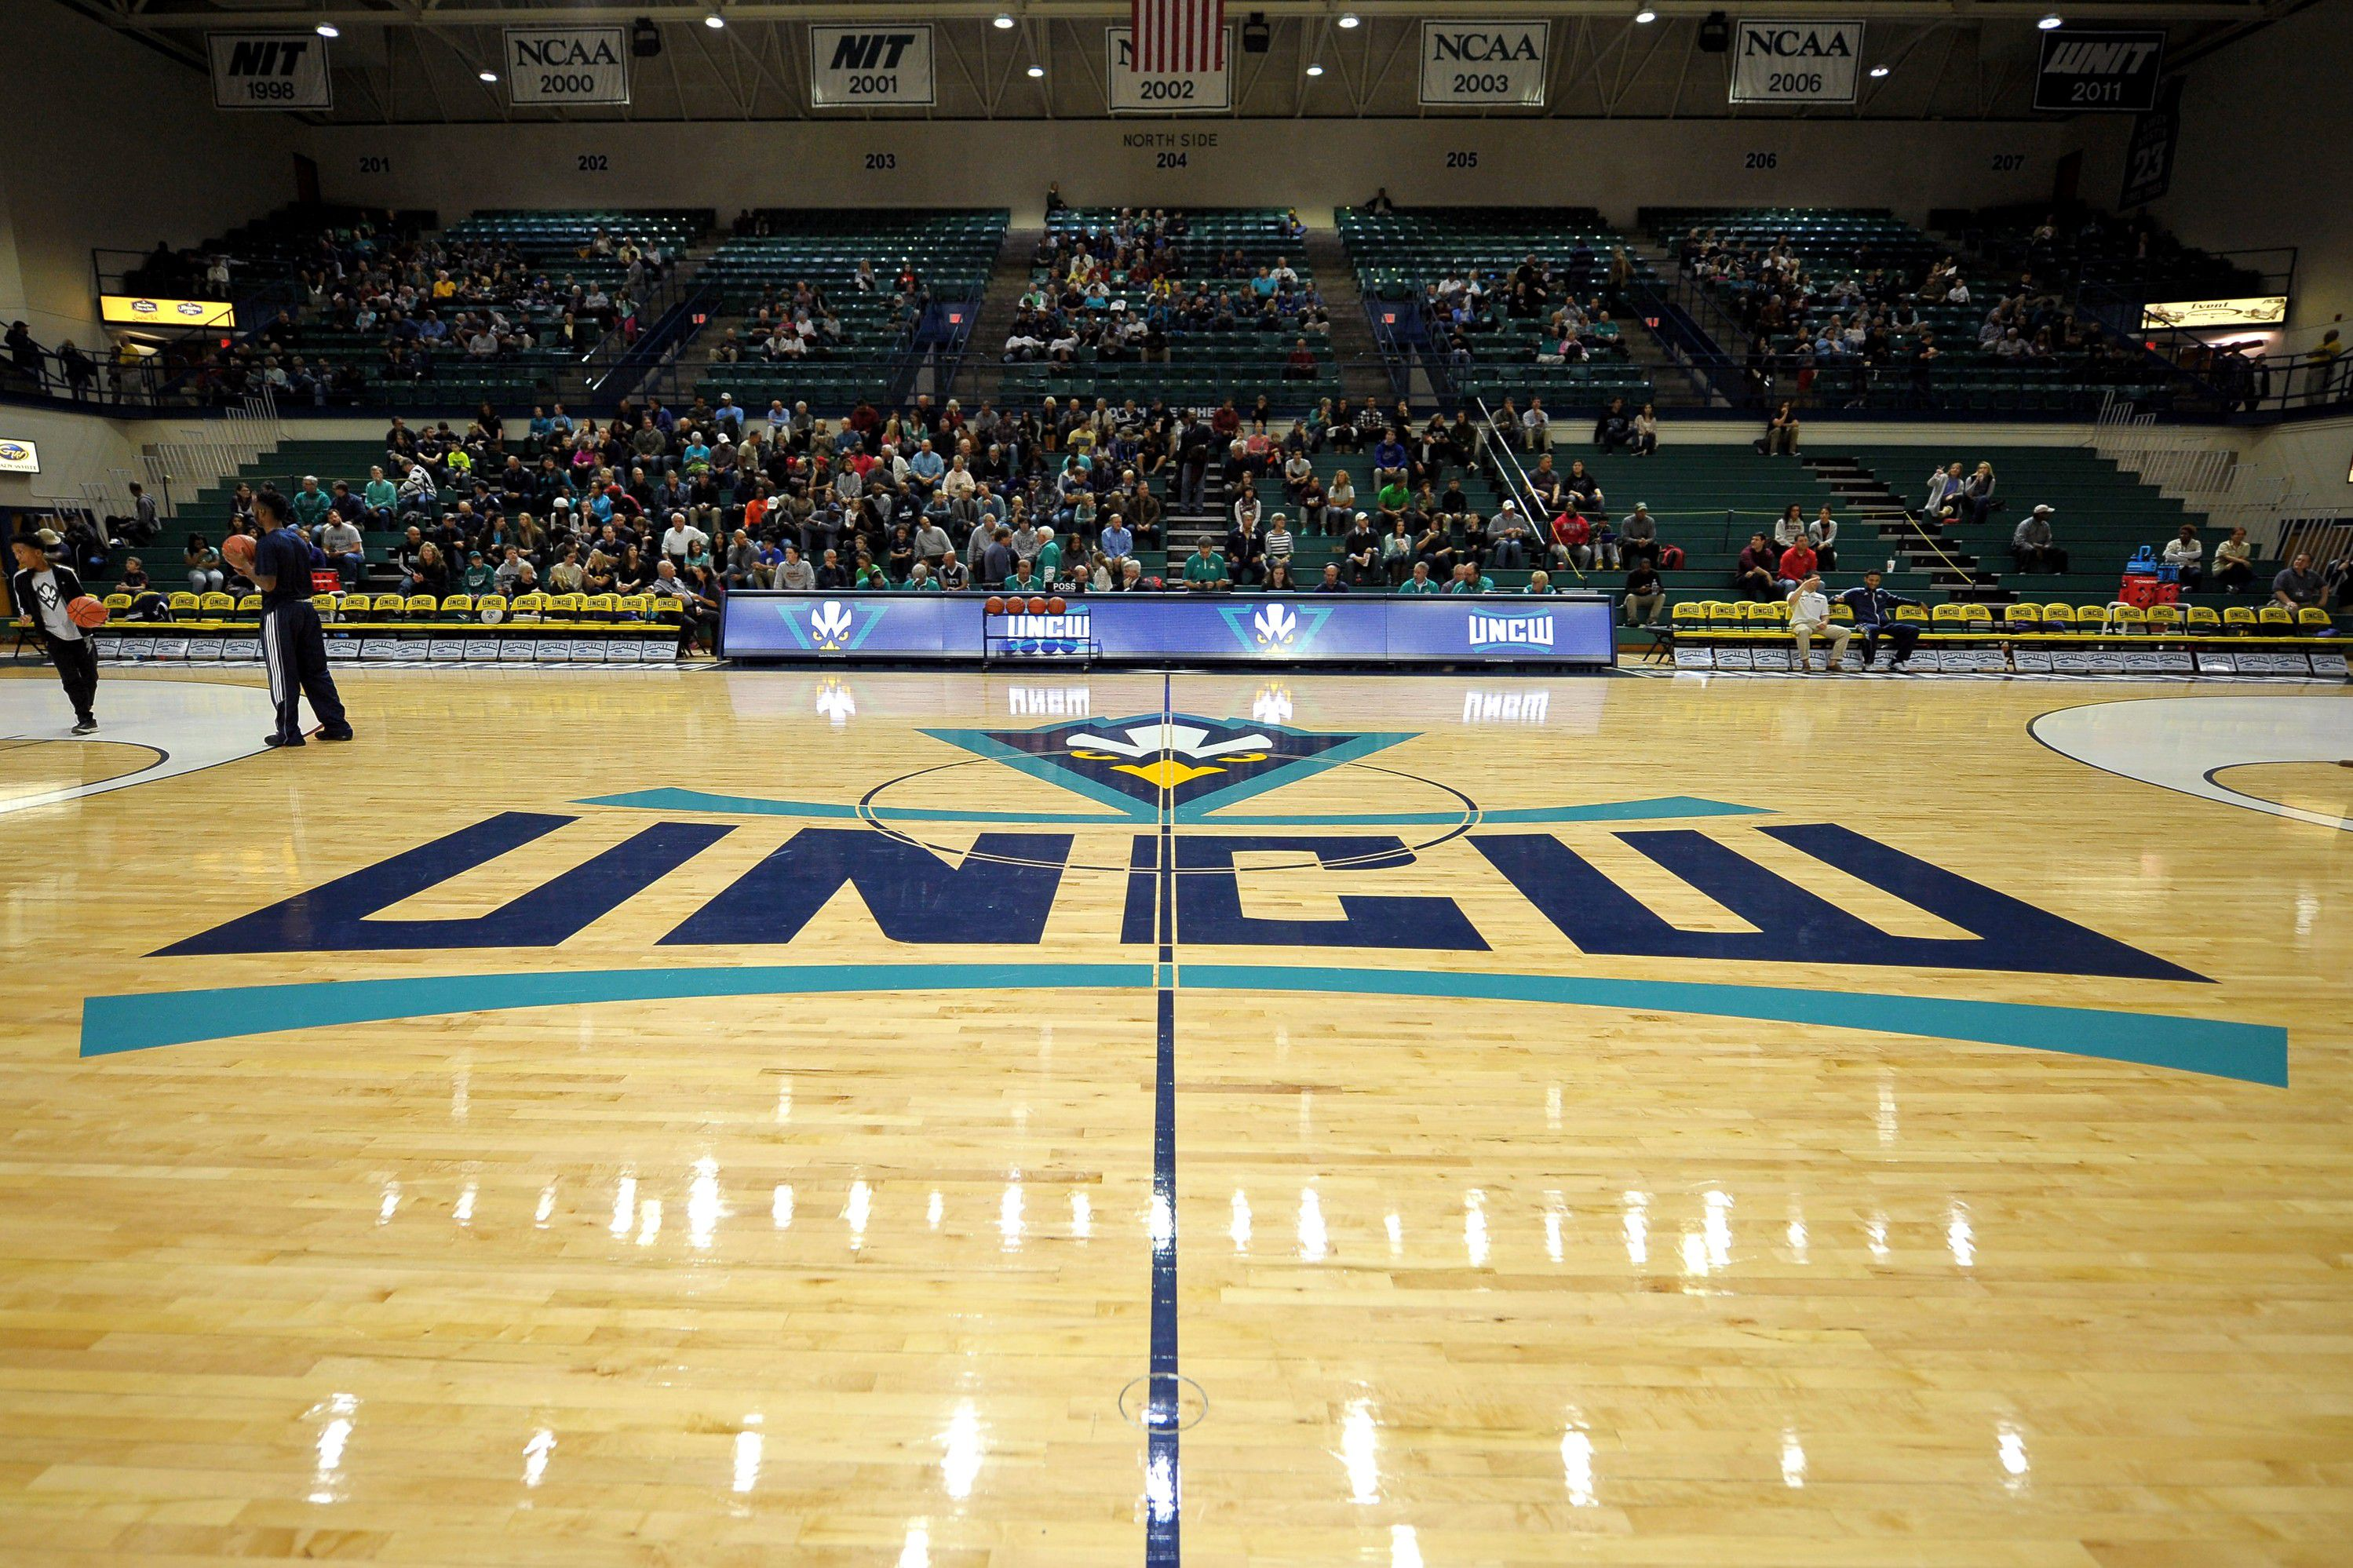 The UNCW Seahawks logo at center court of Trask Coliseum